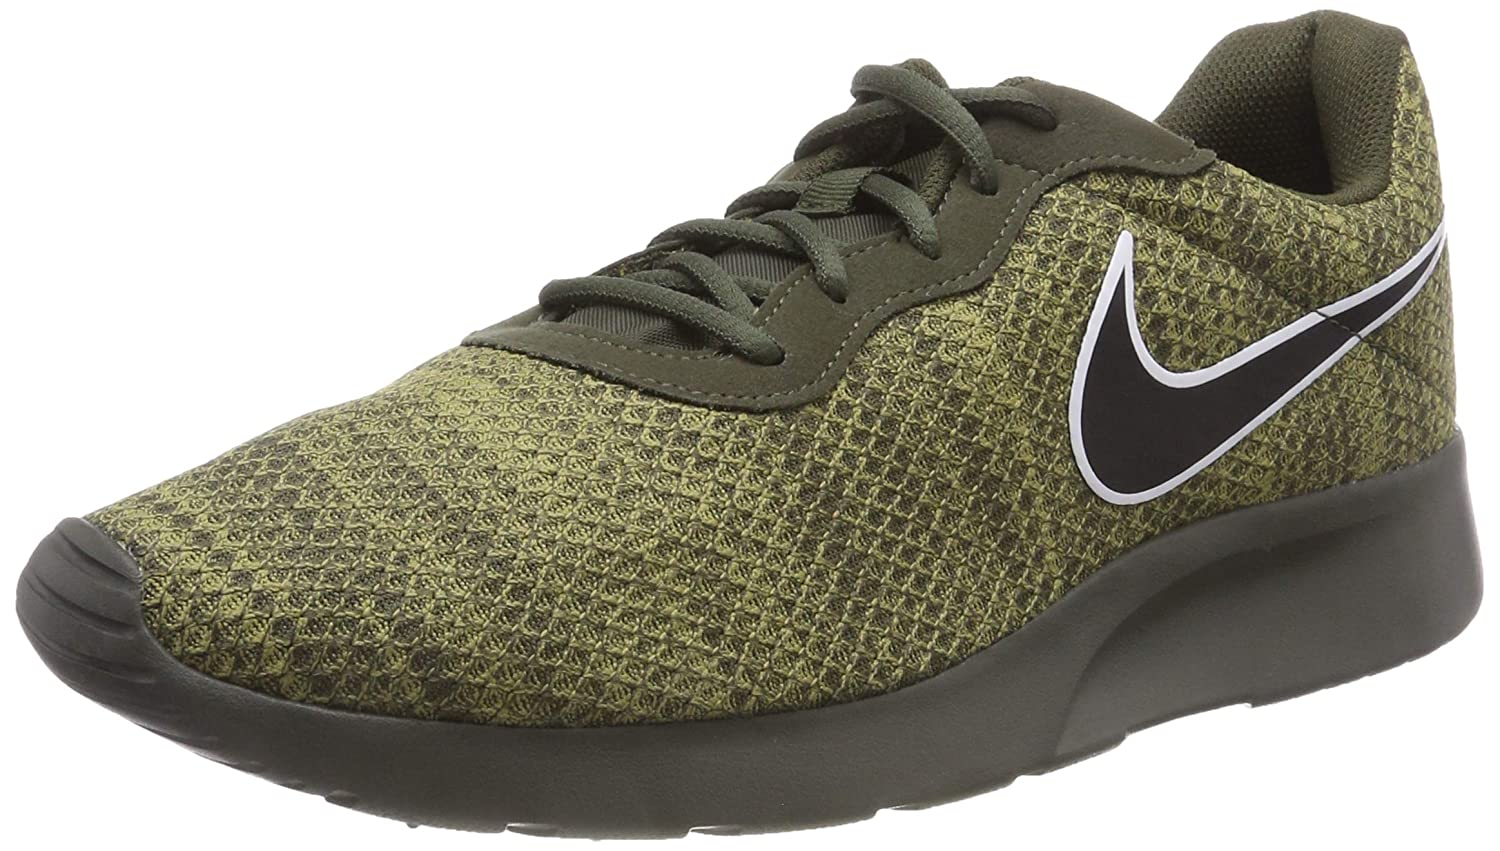 88078fc0f6c6 Nike Men s Flex Fury 2 Running Shoes  Buy Online at Low Prices in India -  Amazon.in